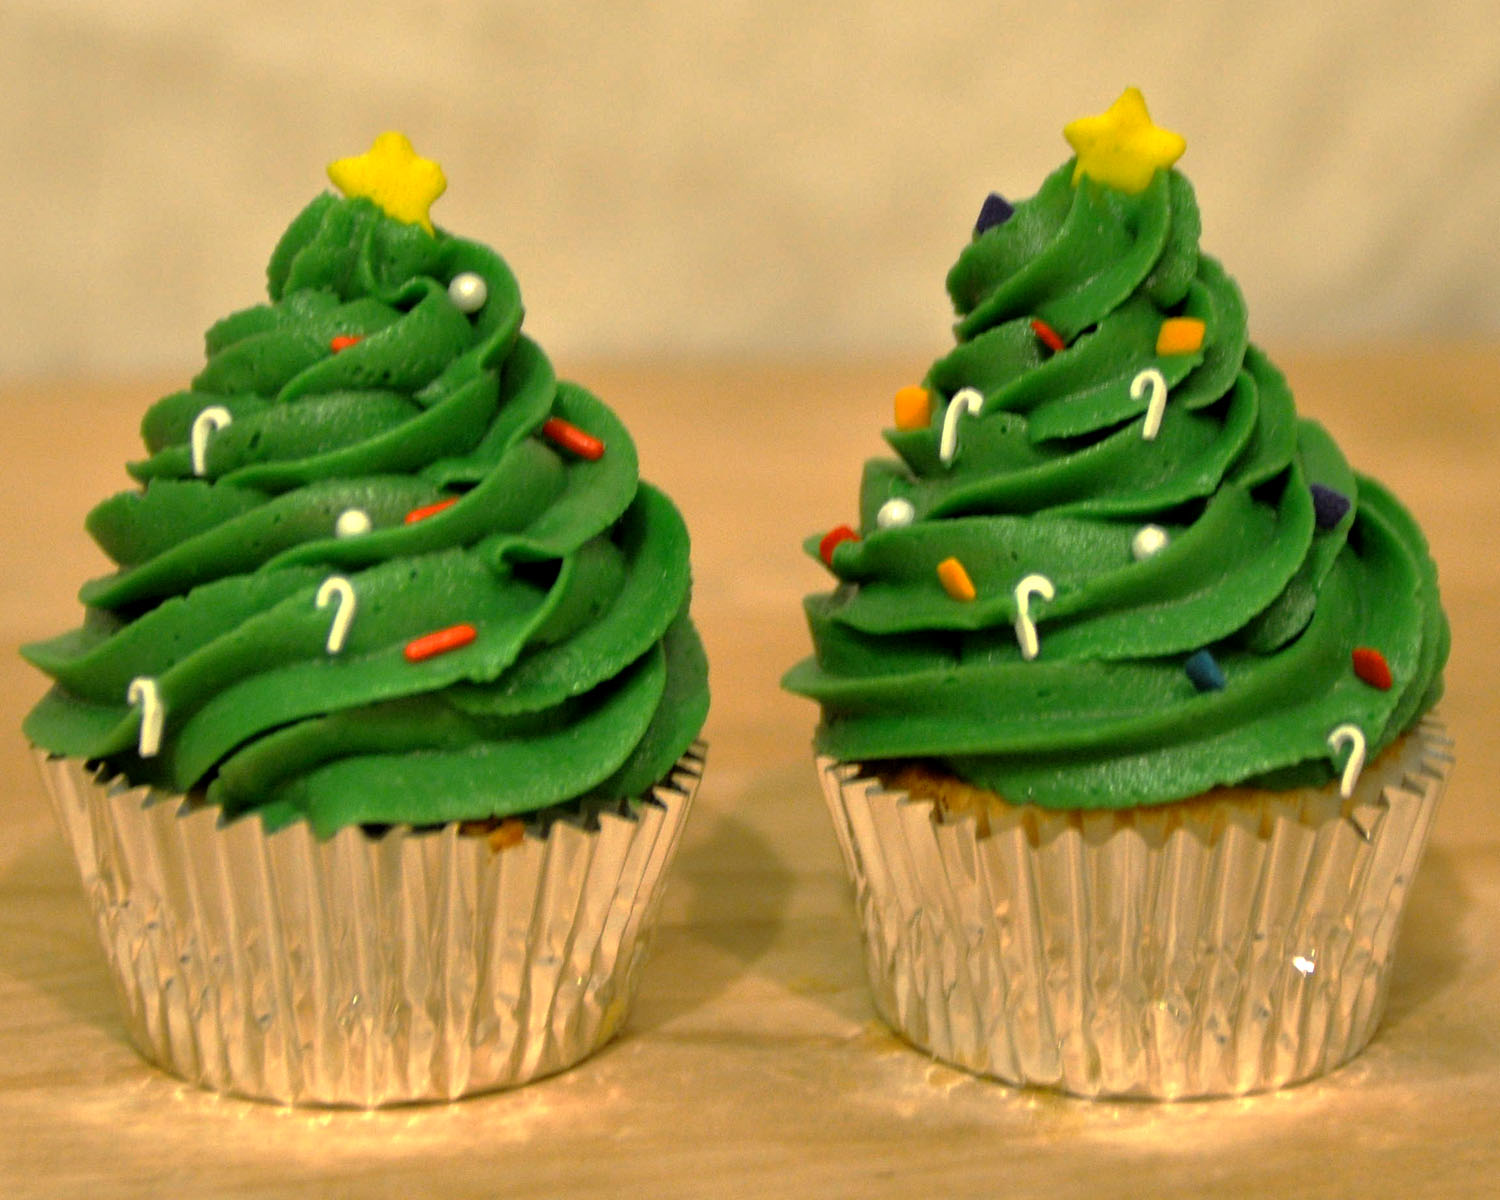 Cupcake Decorating Christmas Tree : Beki Cook s Cake Blog: Simple Christmas Cake